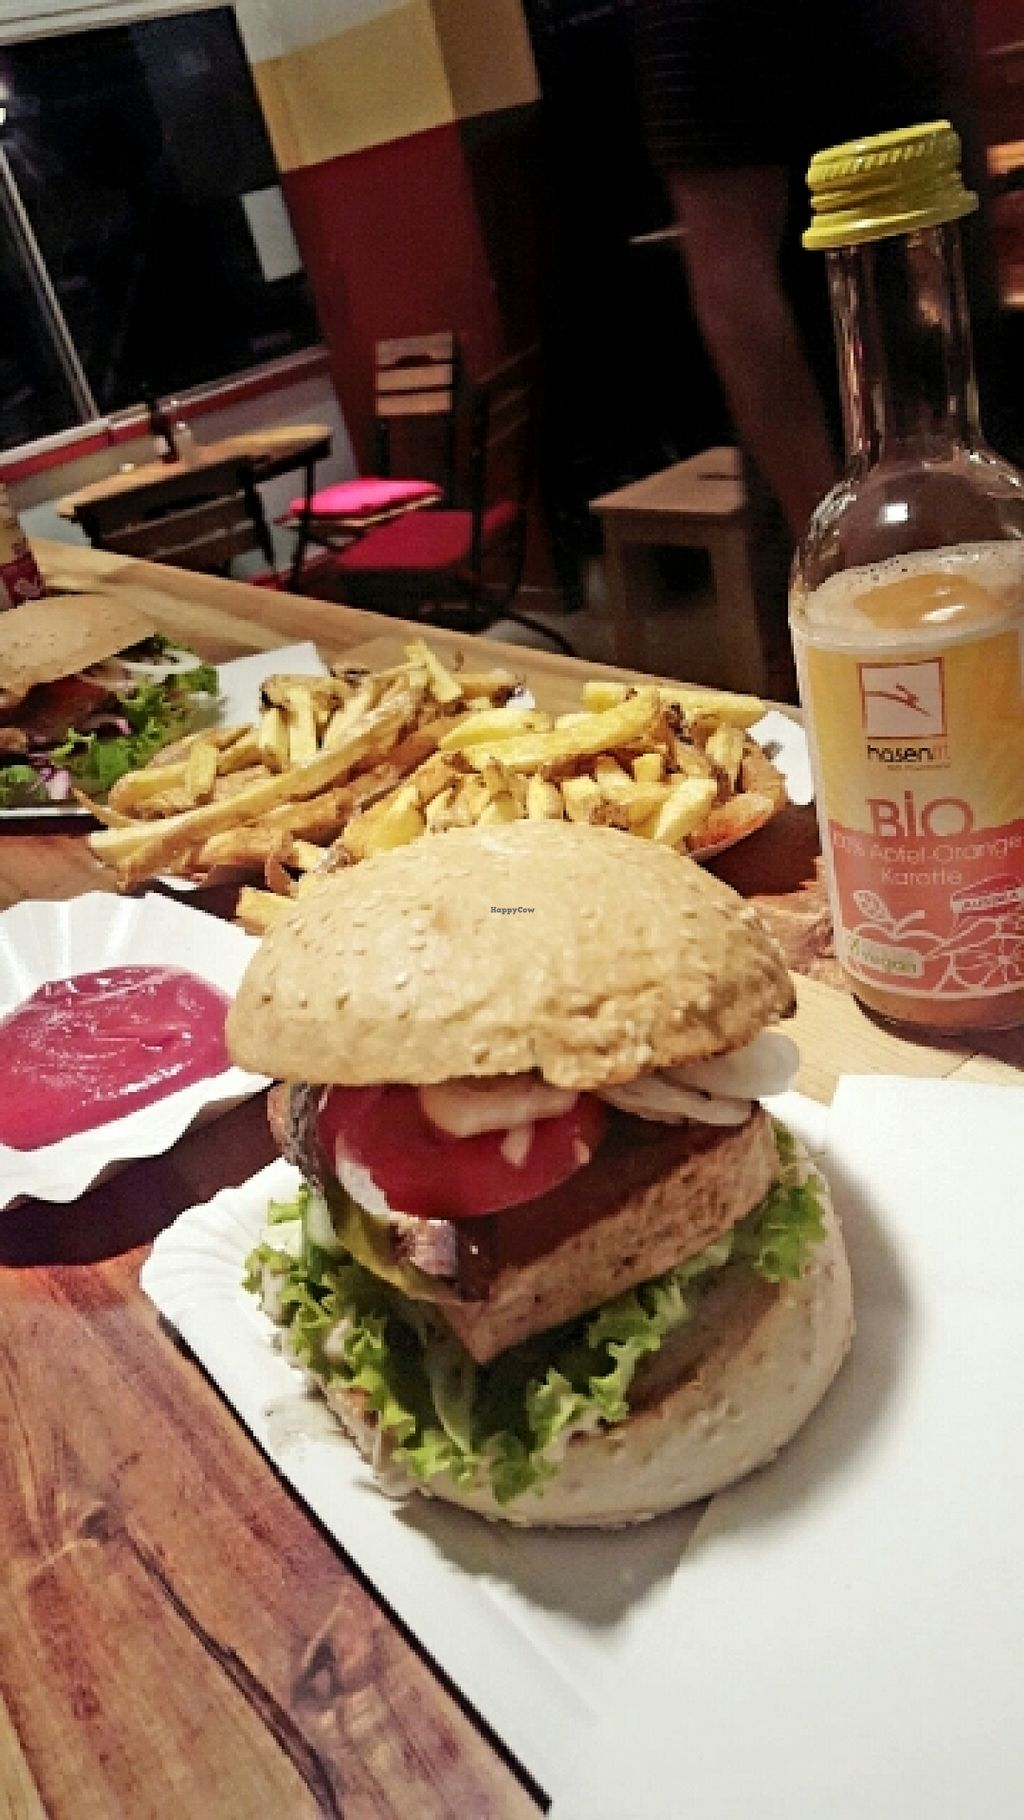 """Photo of BioBurgerMeister  by <a href=""""/members/profile/Nebula"""">Nebula</a> <br/>Delicious & filling <br/> May 31, 2016  - <a href='/contact/abuse/image/63357/151560'>Report</a>"""